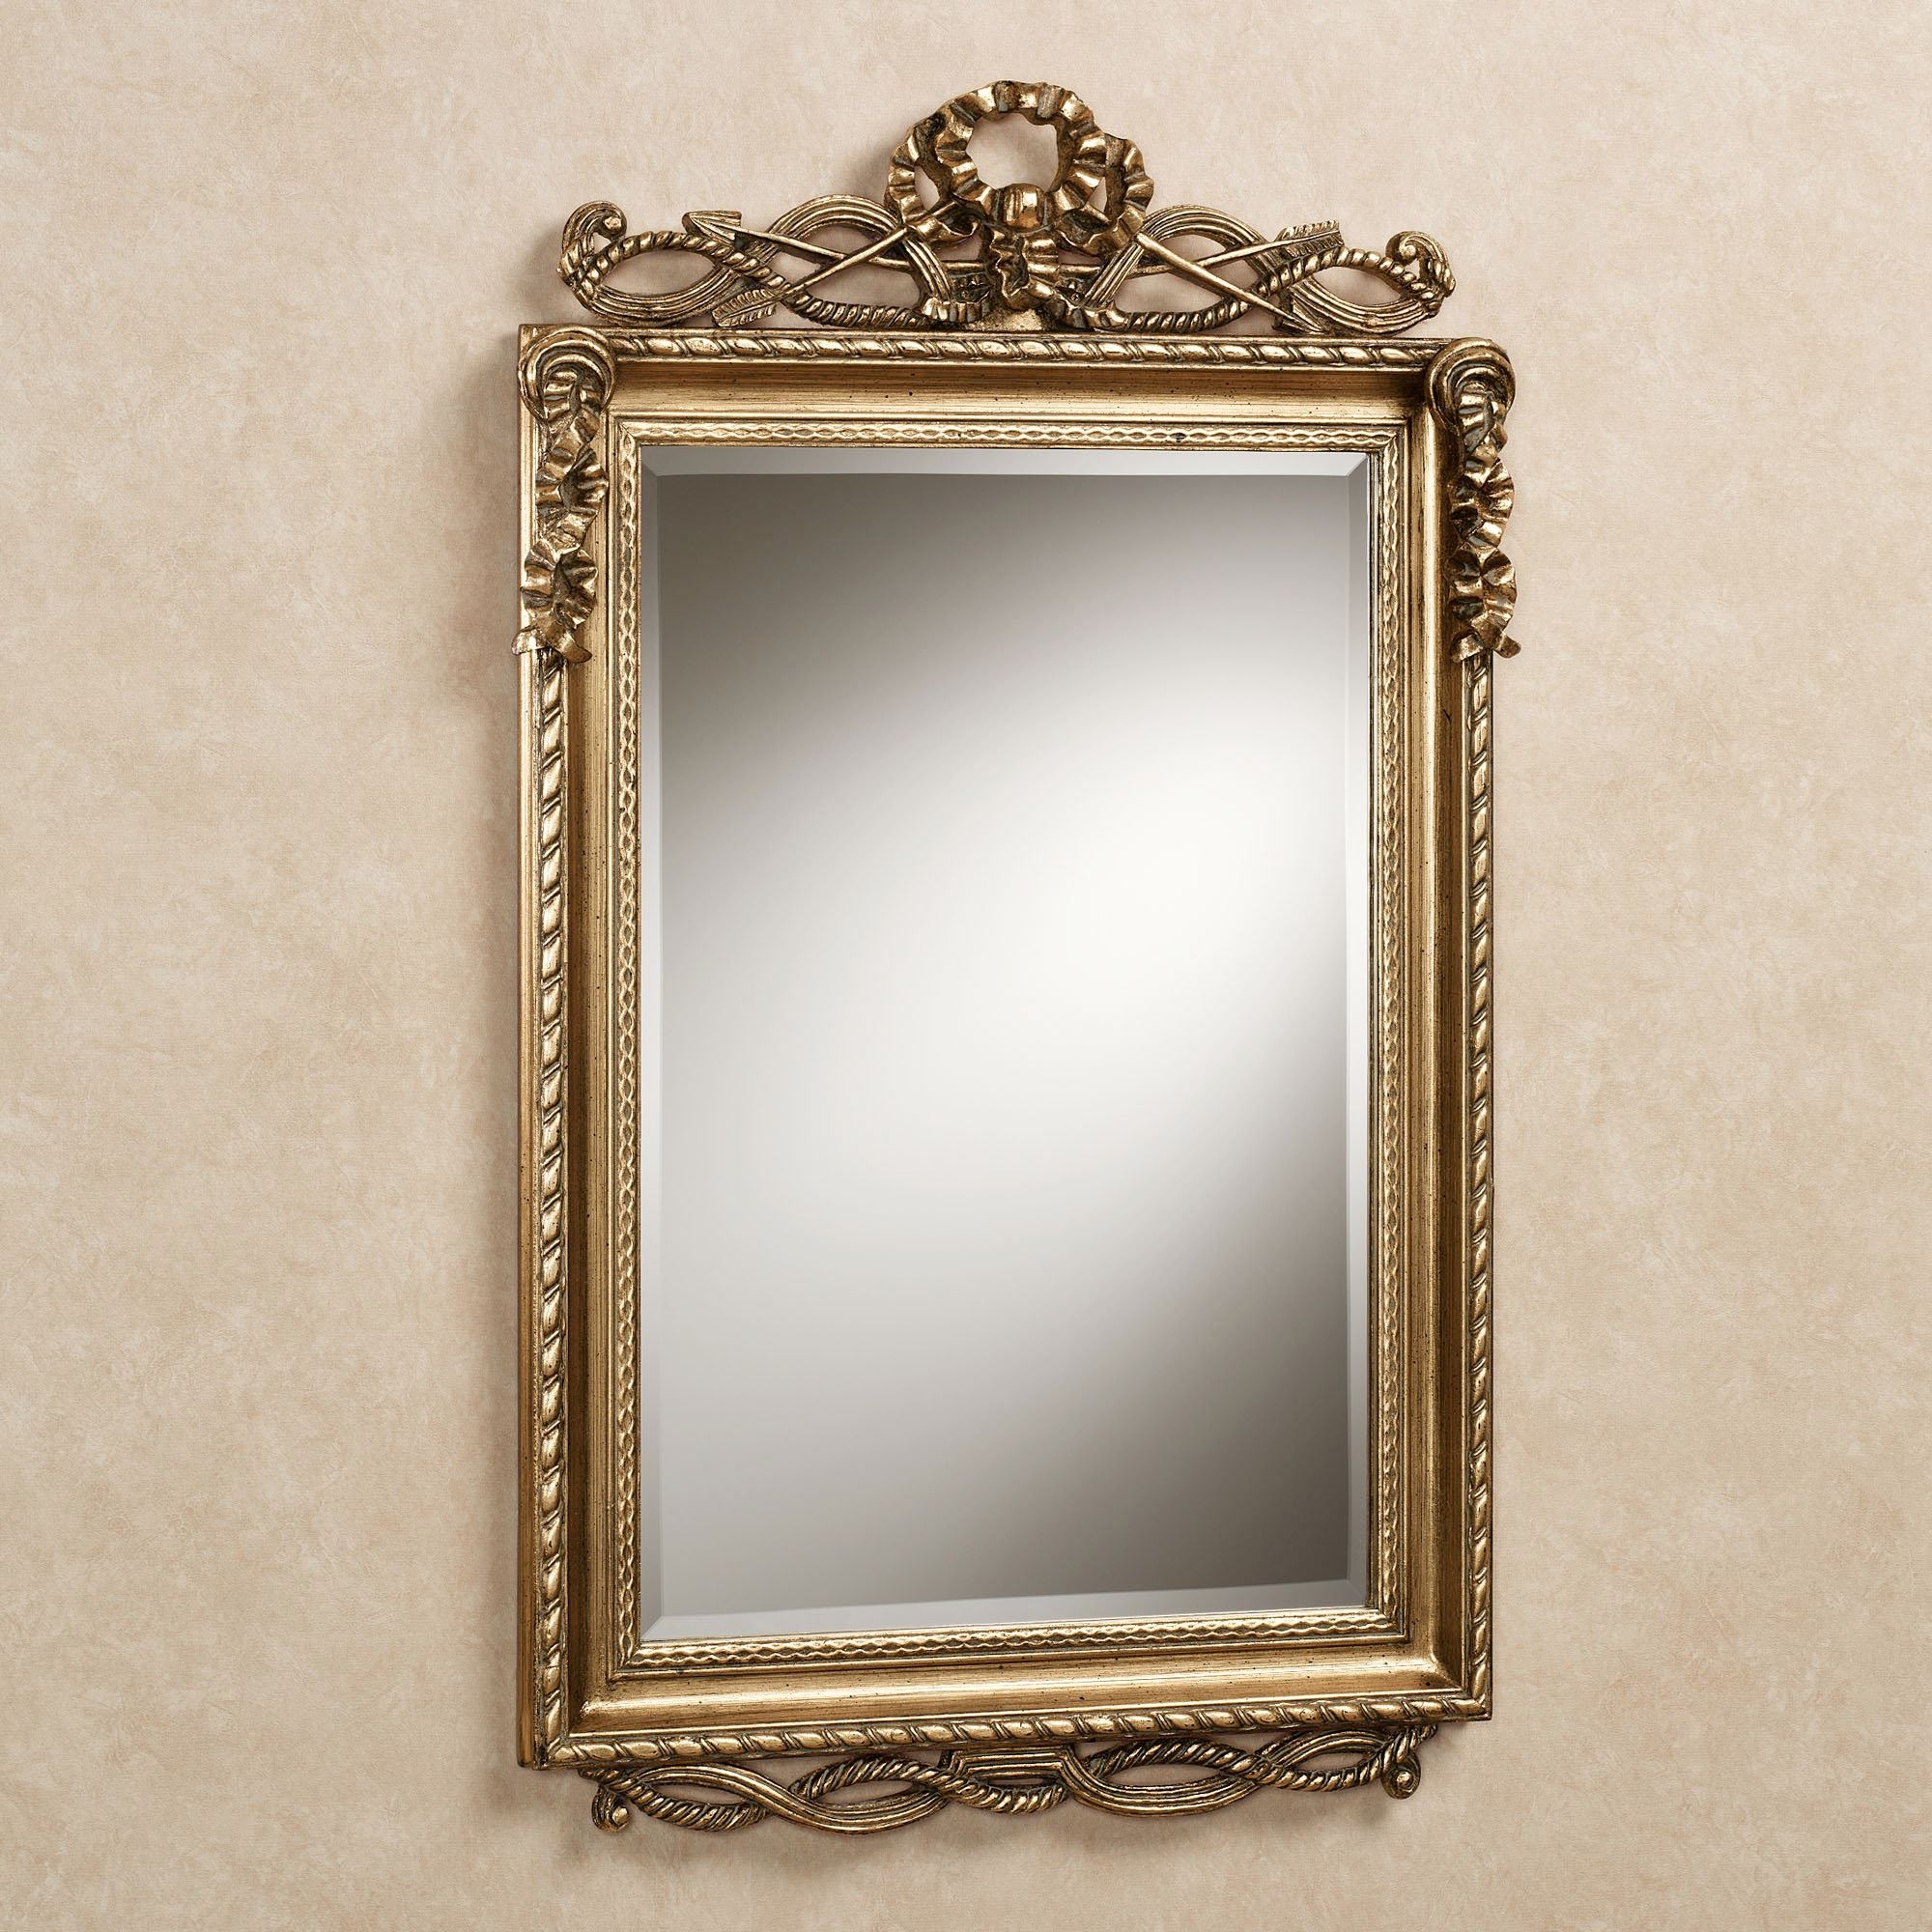 Traditional Wall Mirrors Pertaining To 2020 Lancaster Twist Design Rectangular Wall Mirror (View 10 of 20)